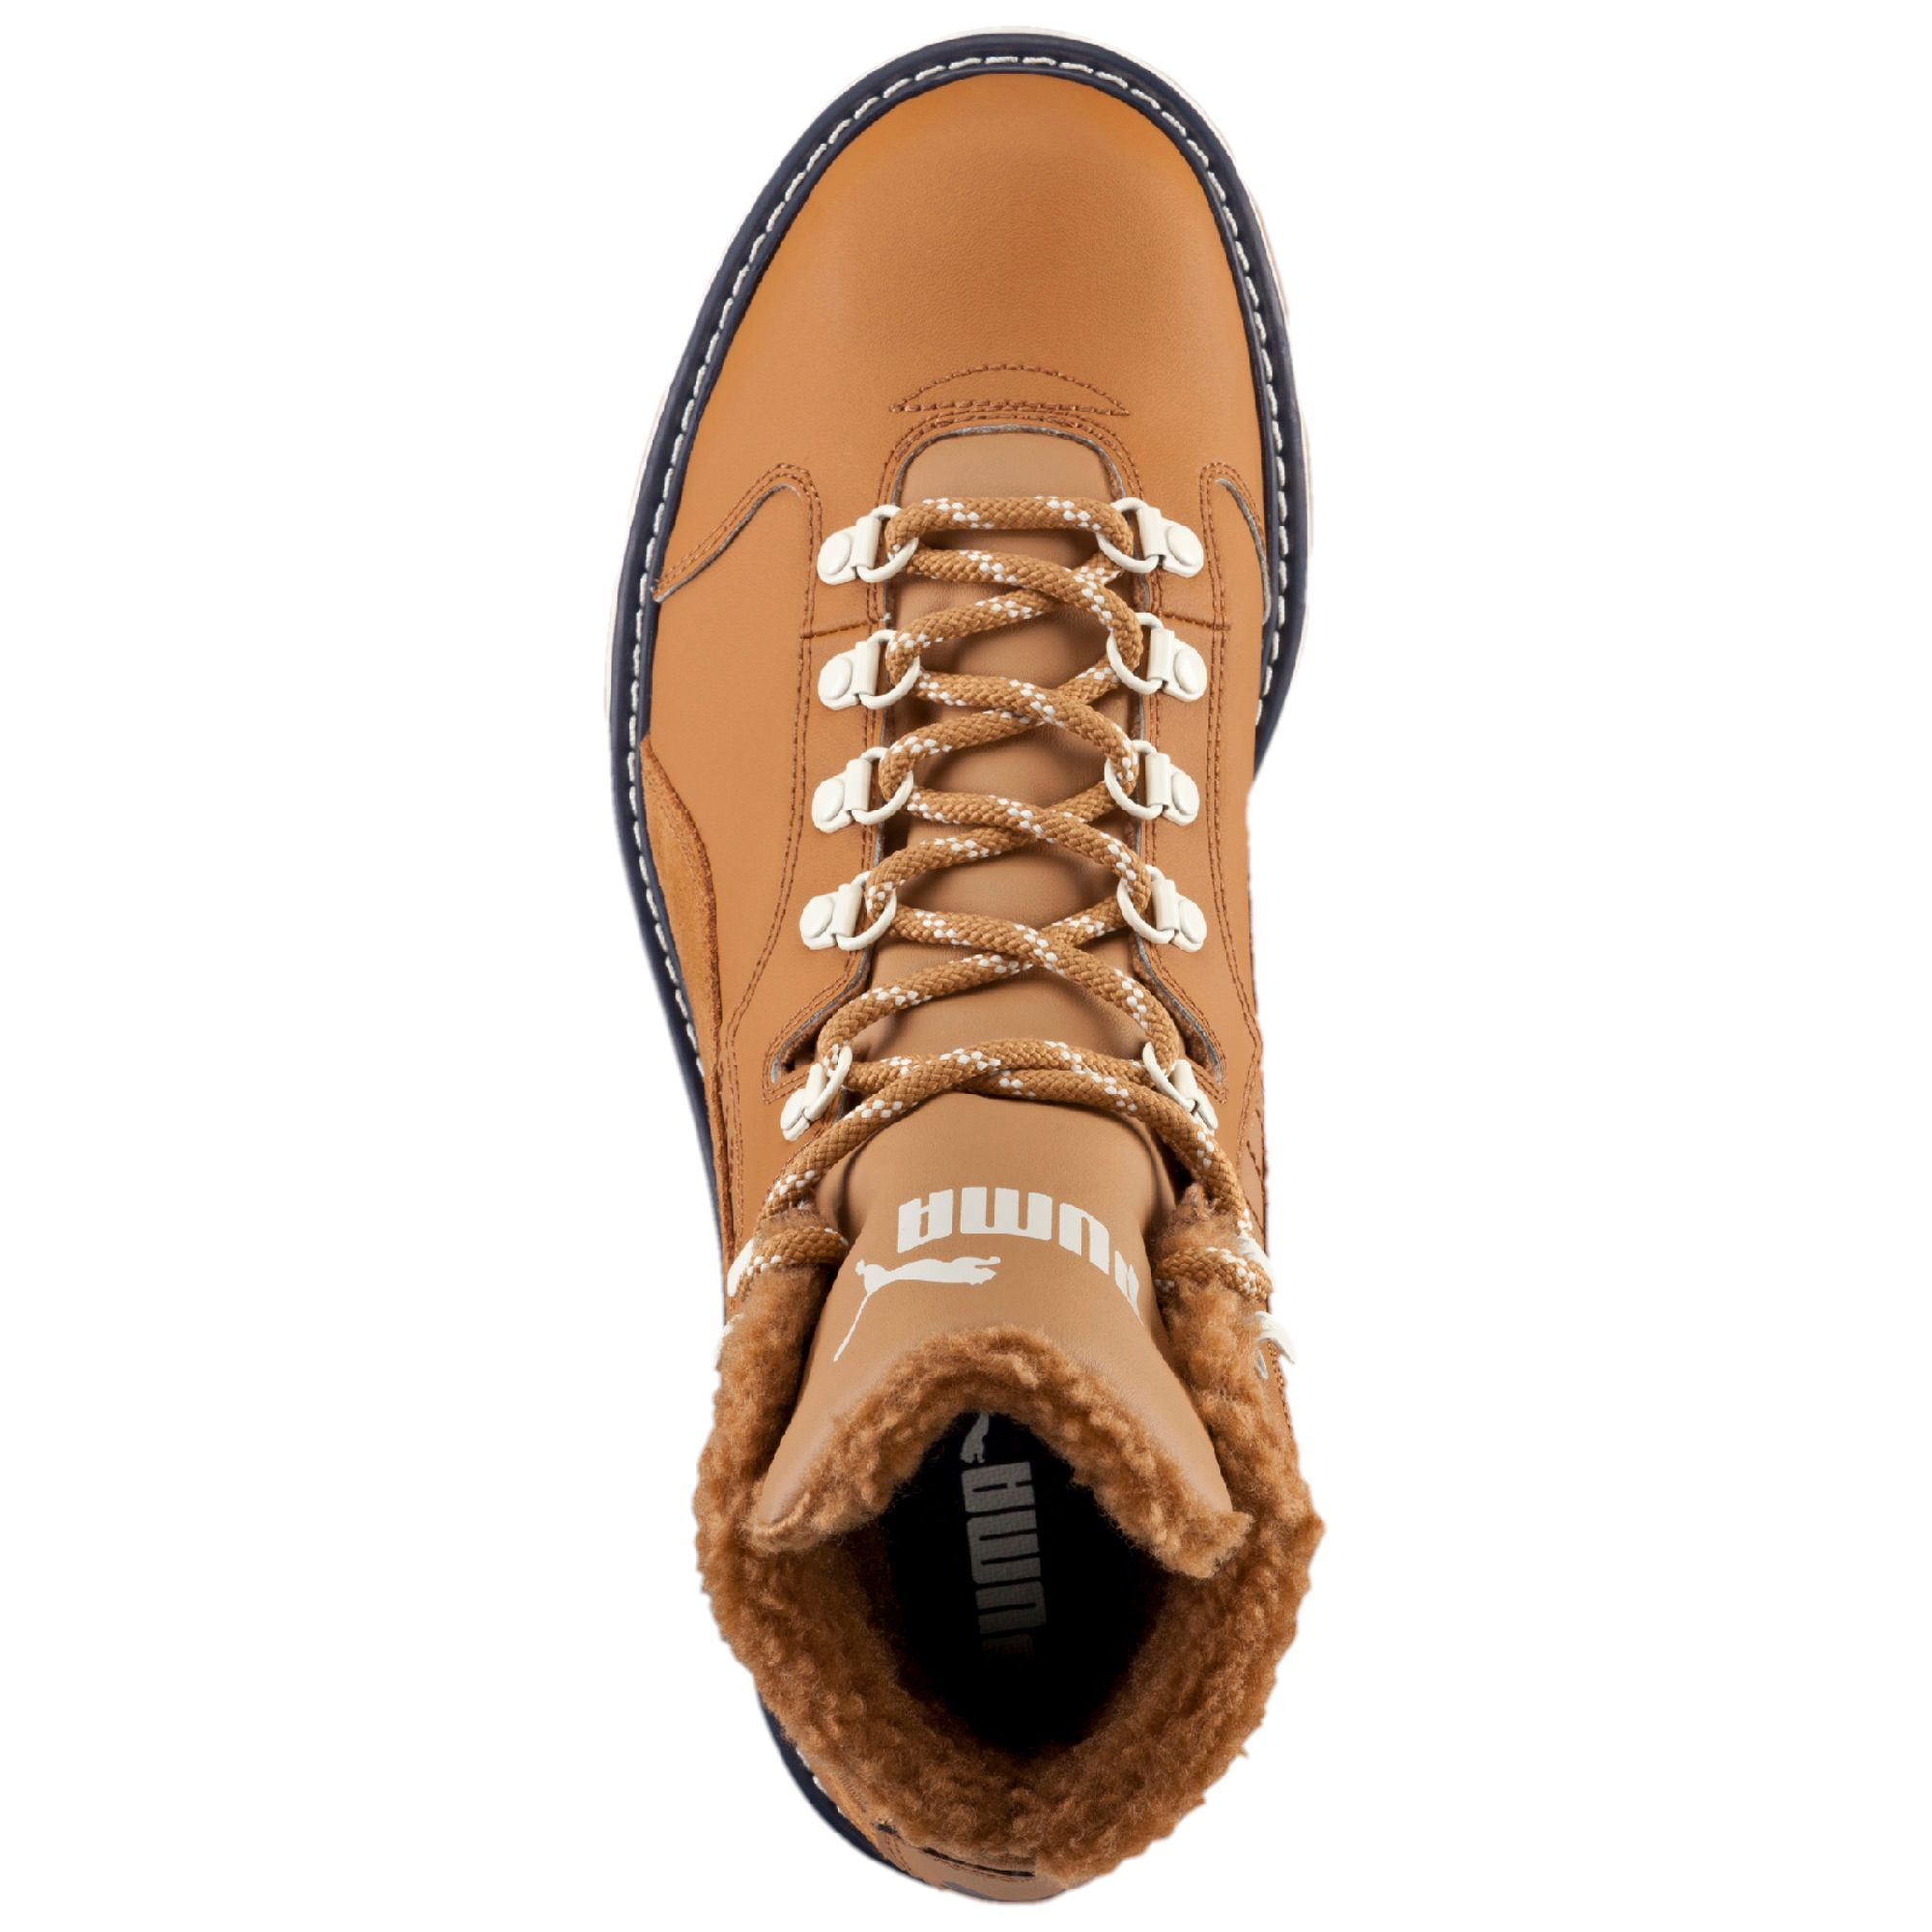 768bbbe7aa8dad Lyst - PUMA Tatau Fur Men s Boots in Brown for Men